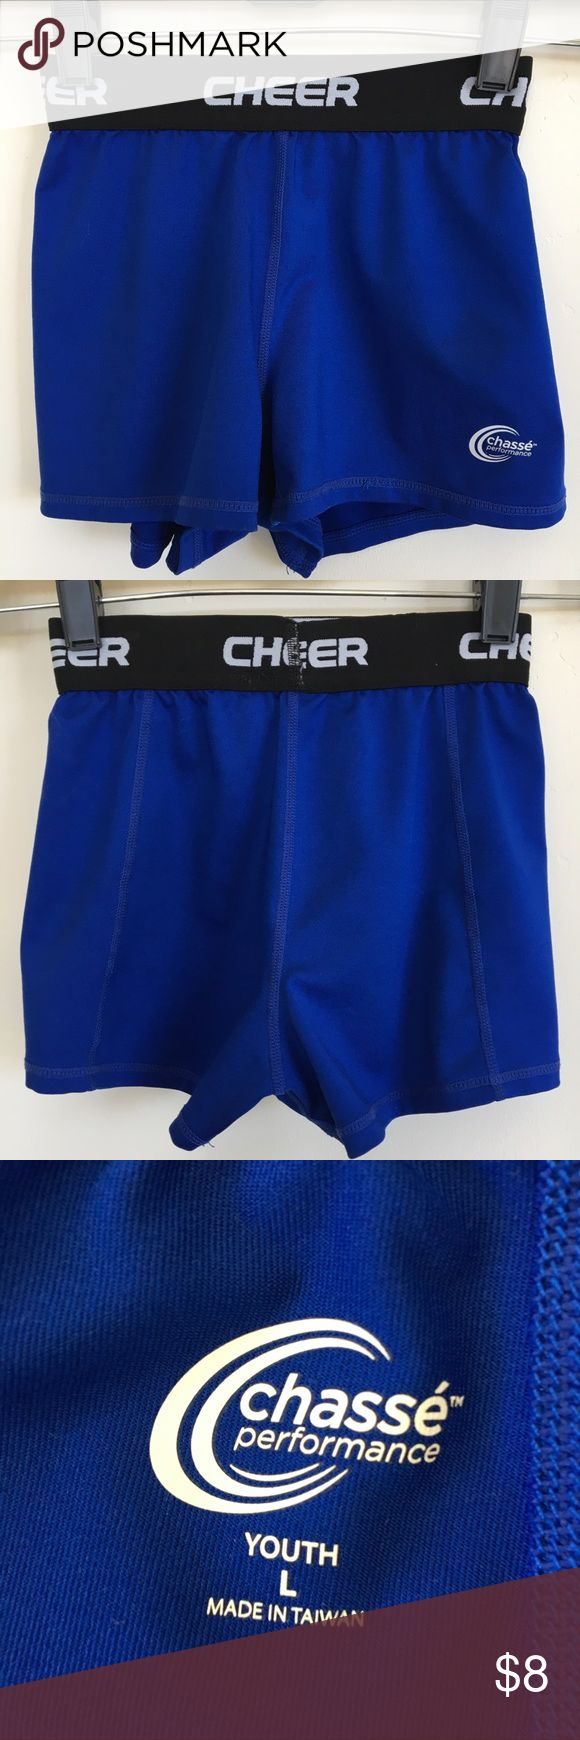 """Chase performance """"cheer"""" shorts. Girl's size (L). Chase performance """"cheer"""" shorts. Girl's size (L). Great condition. Chasse perfornance Bottoms Shorts"""